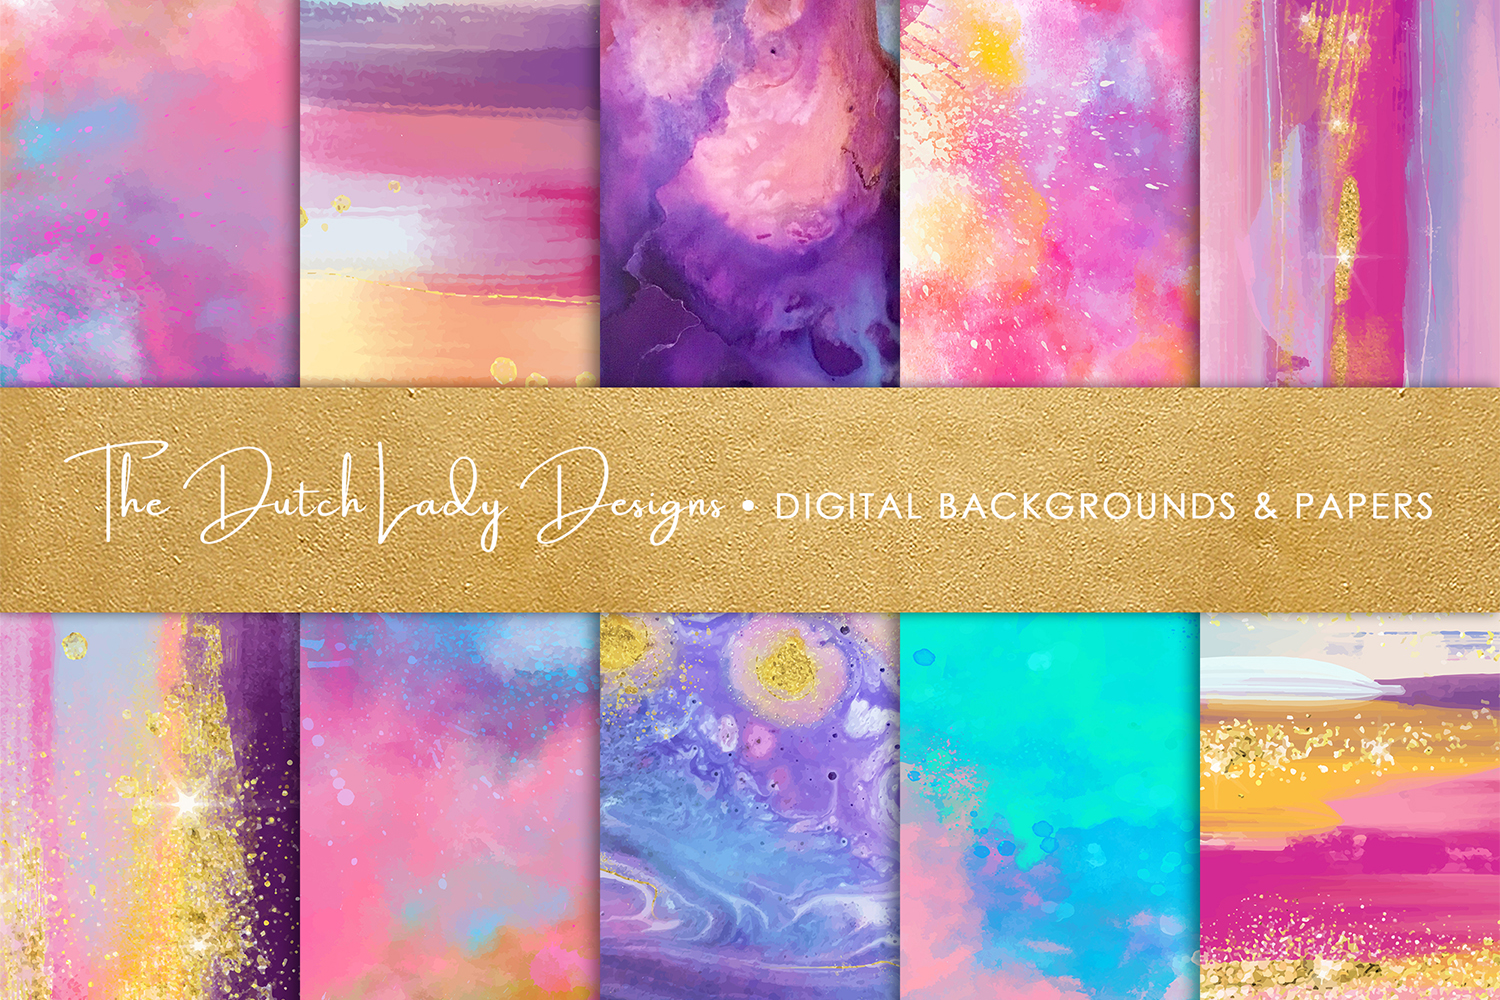 Colorful Brush Strokes & Stains Background Textures example image 1